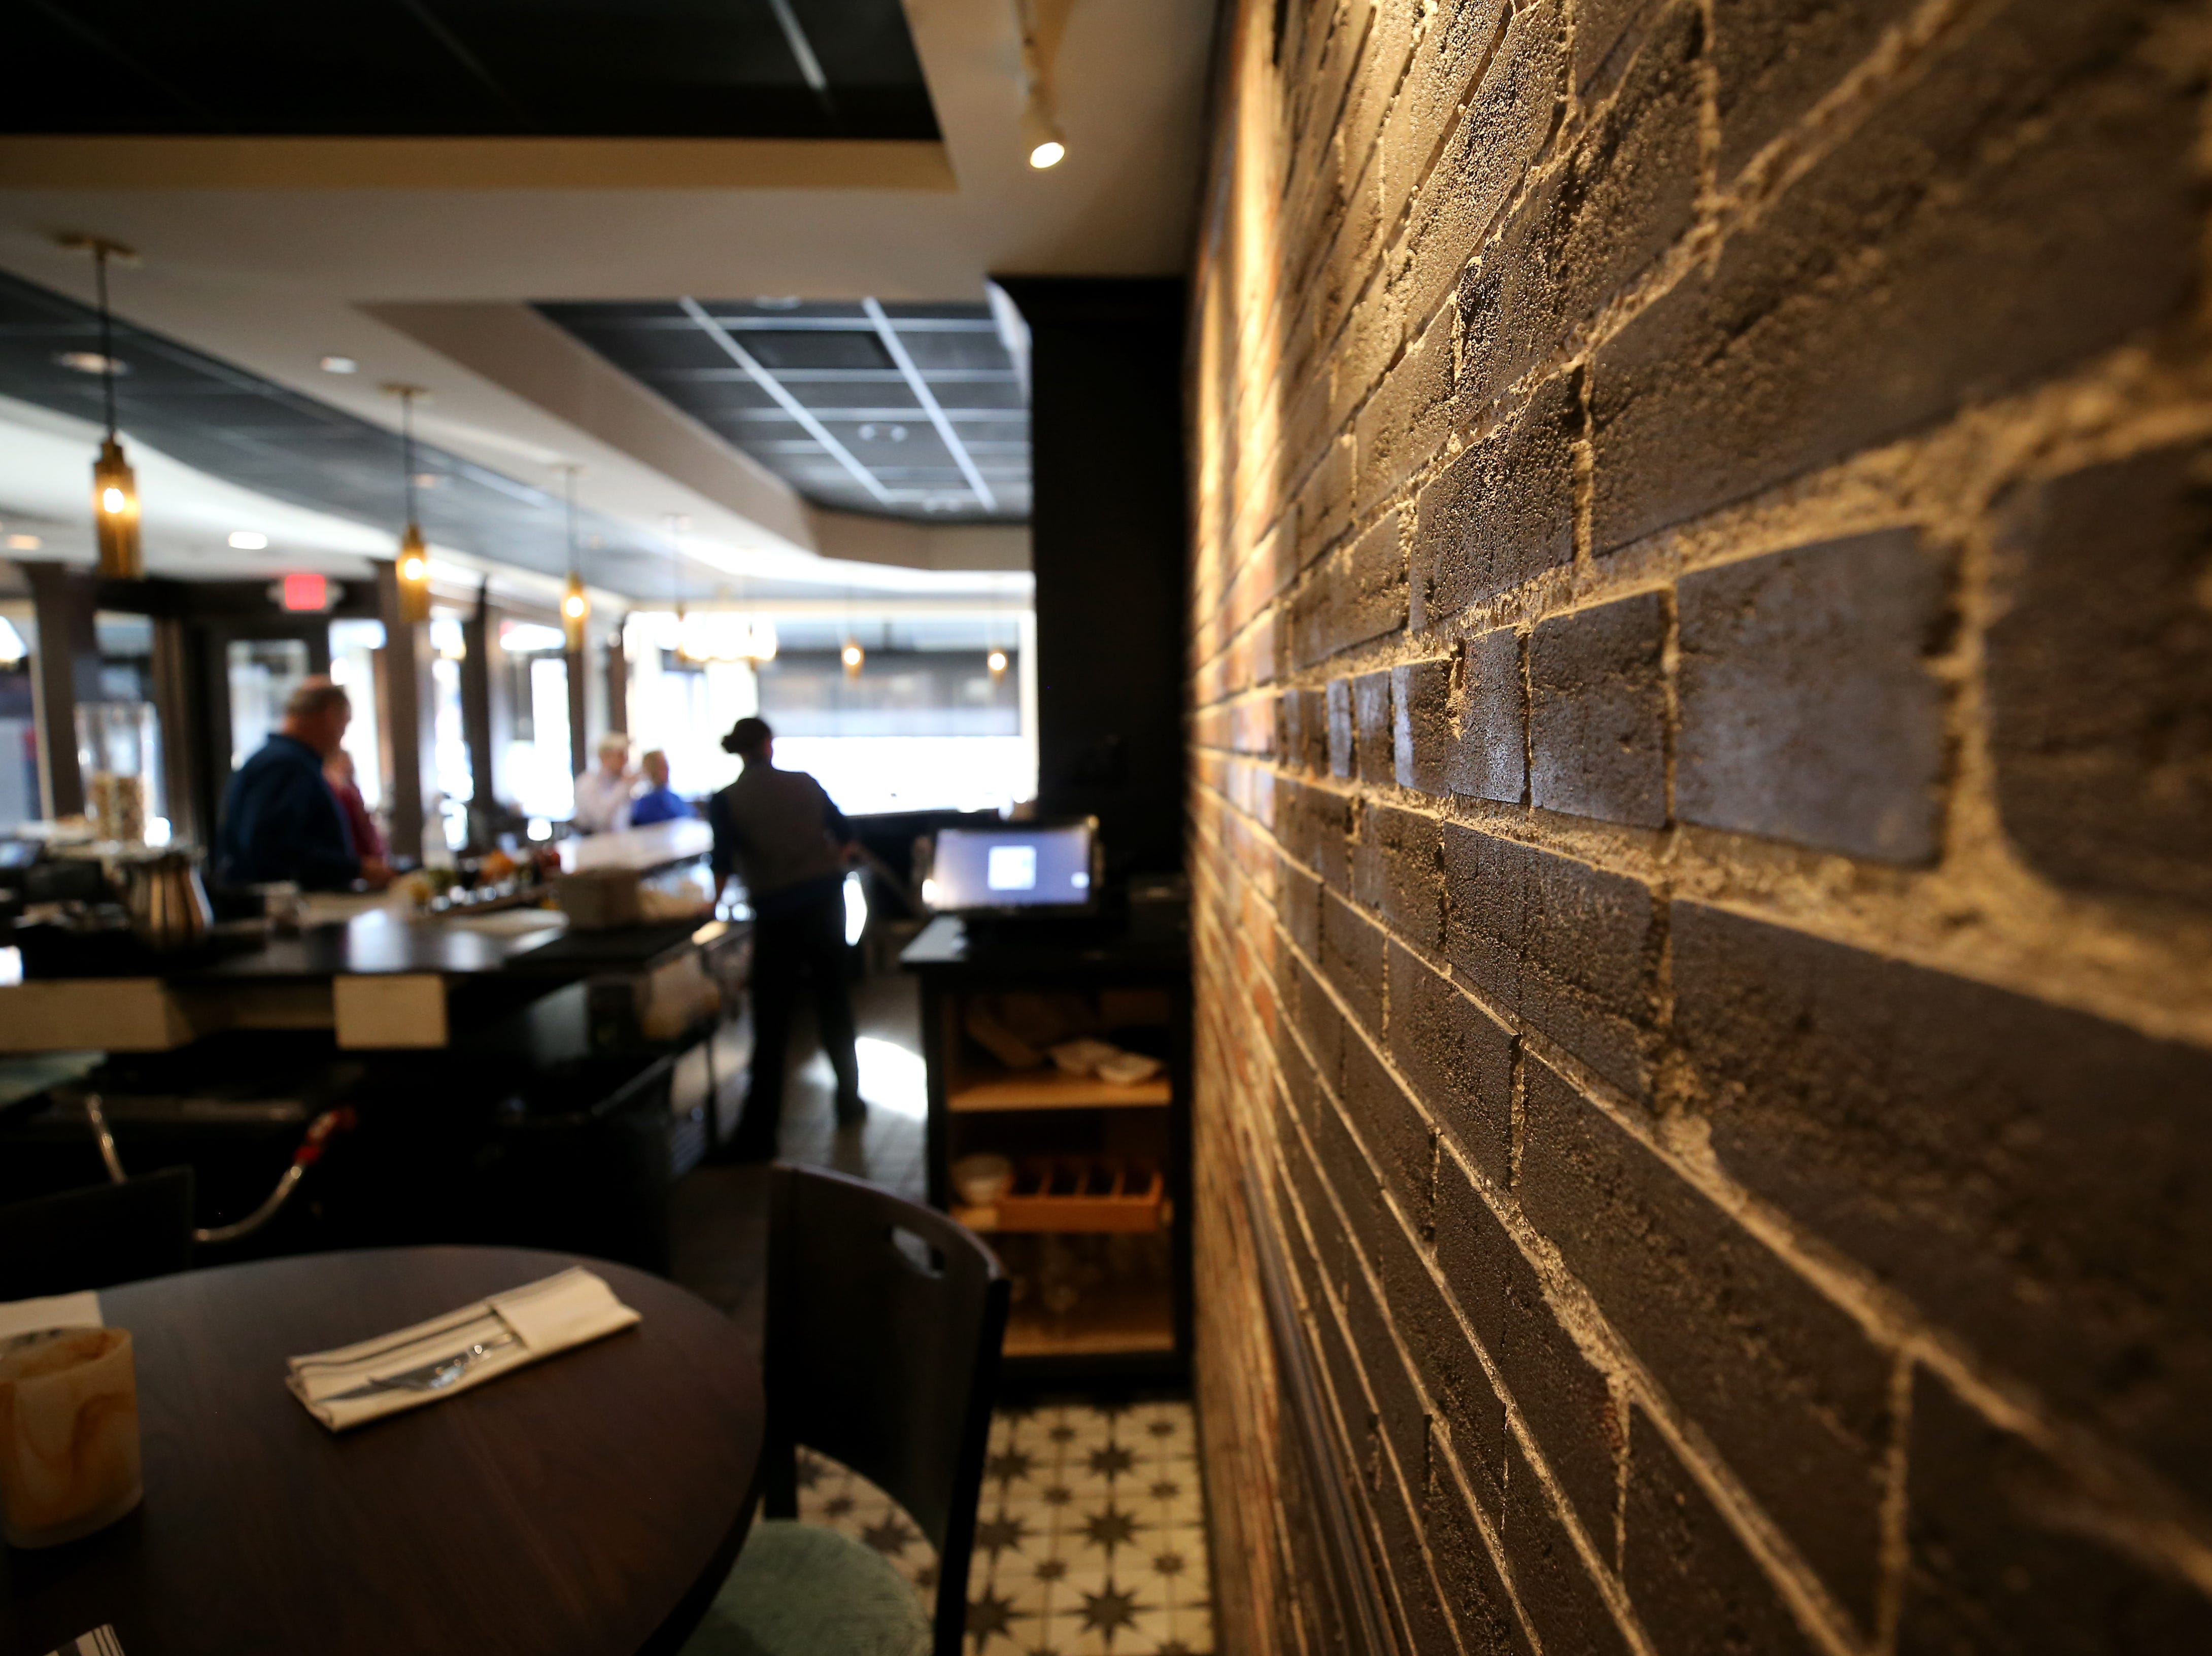 Exposed brick is featured in the bar area, pictured, Friday, Jan. 25, 2019, at Tano Bistro restaurant in Loveland, Ohio.